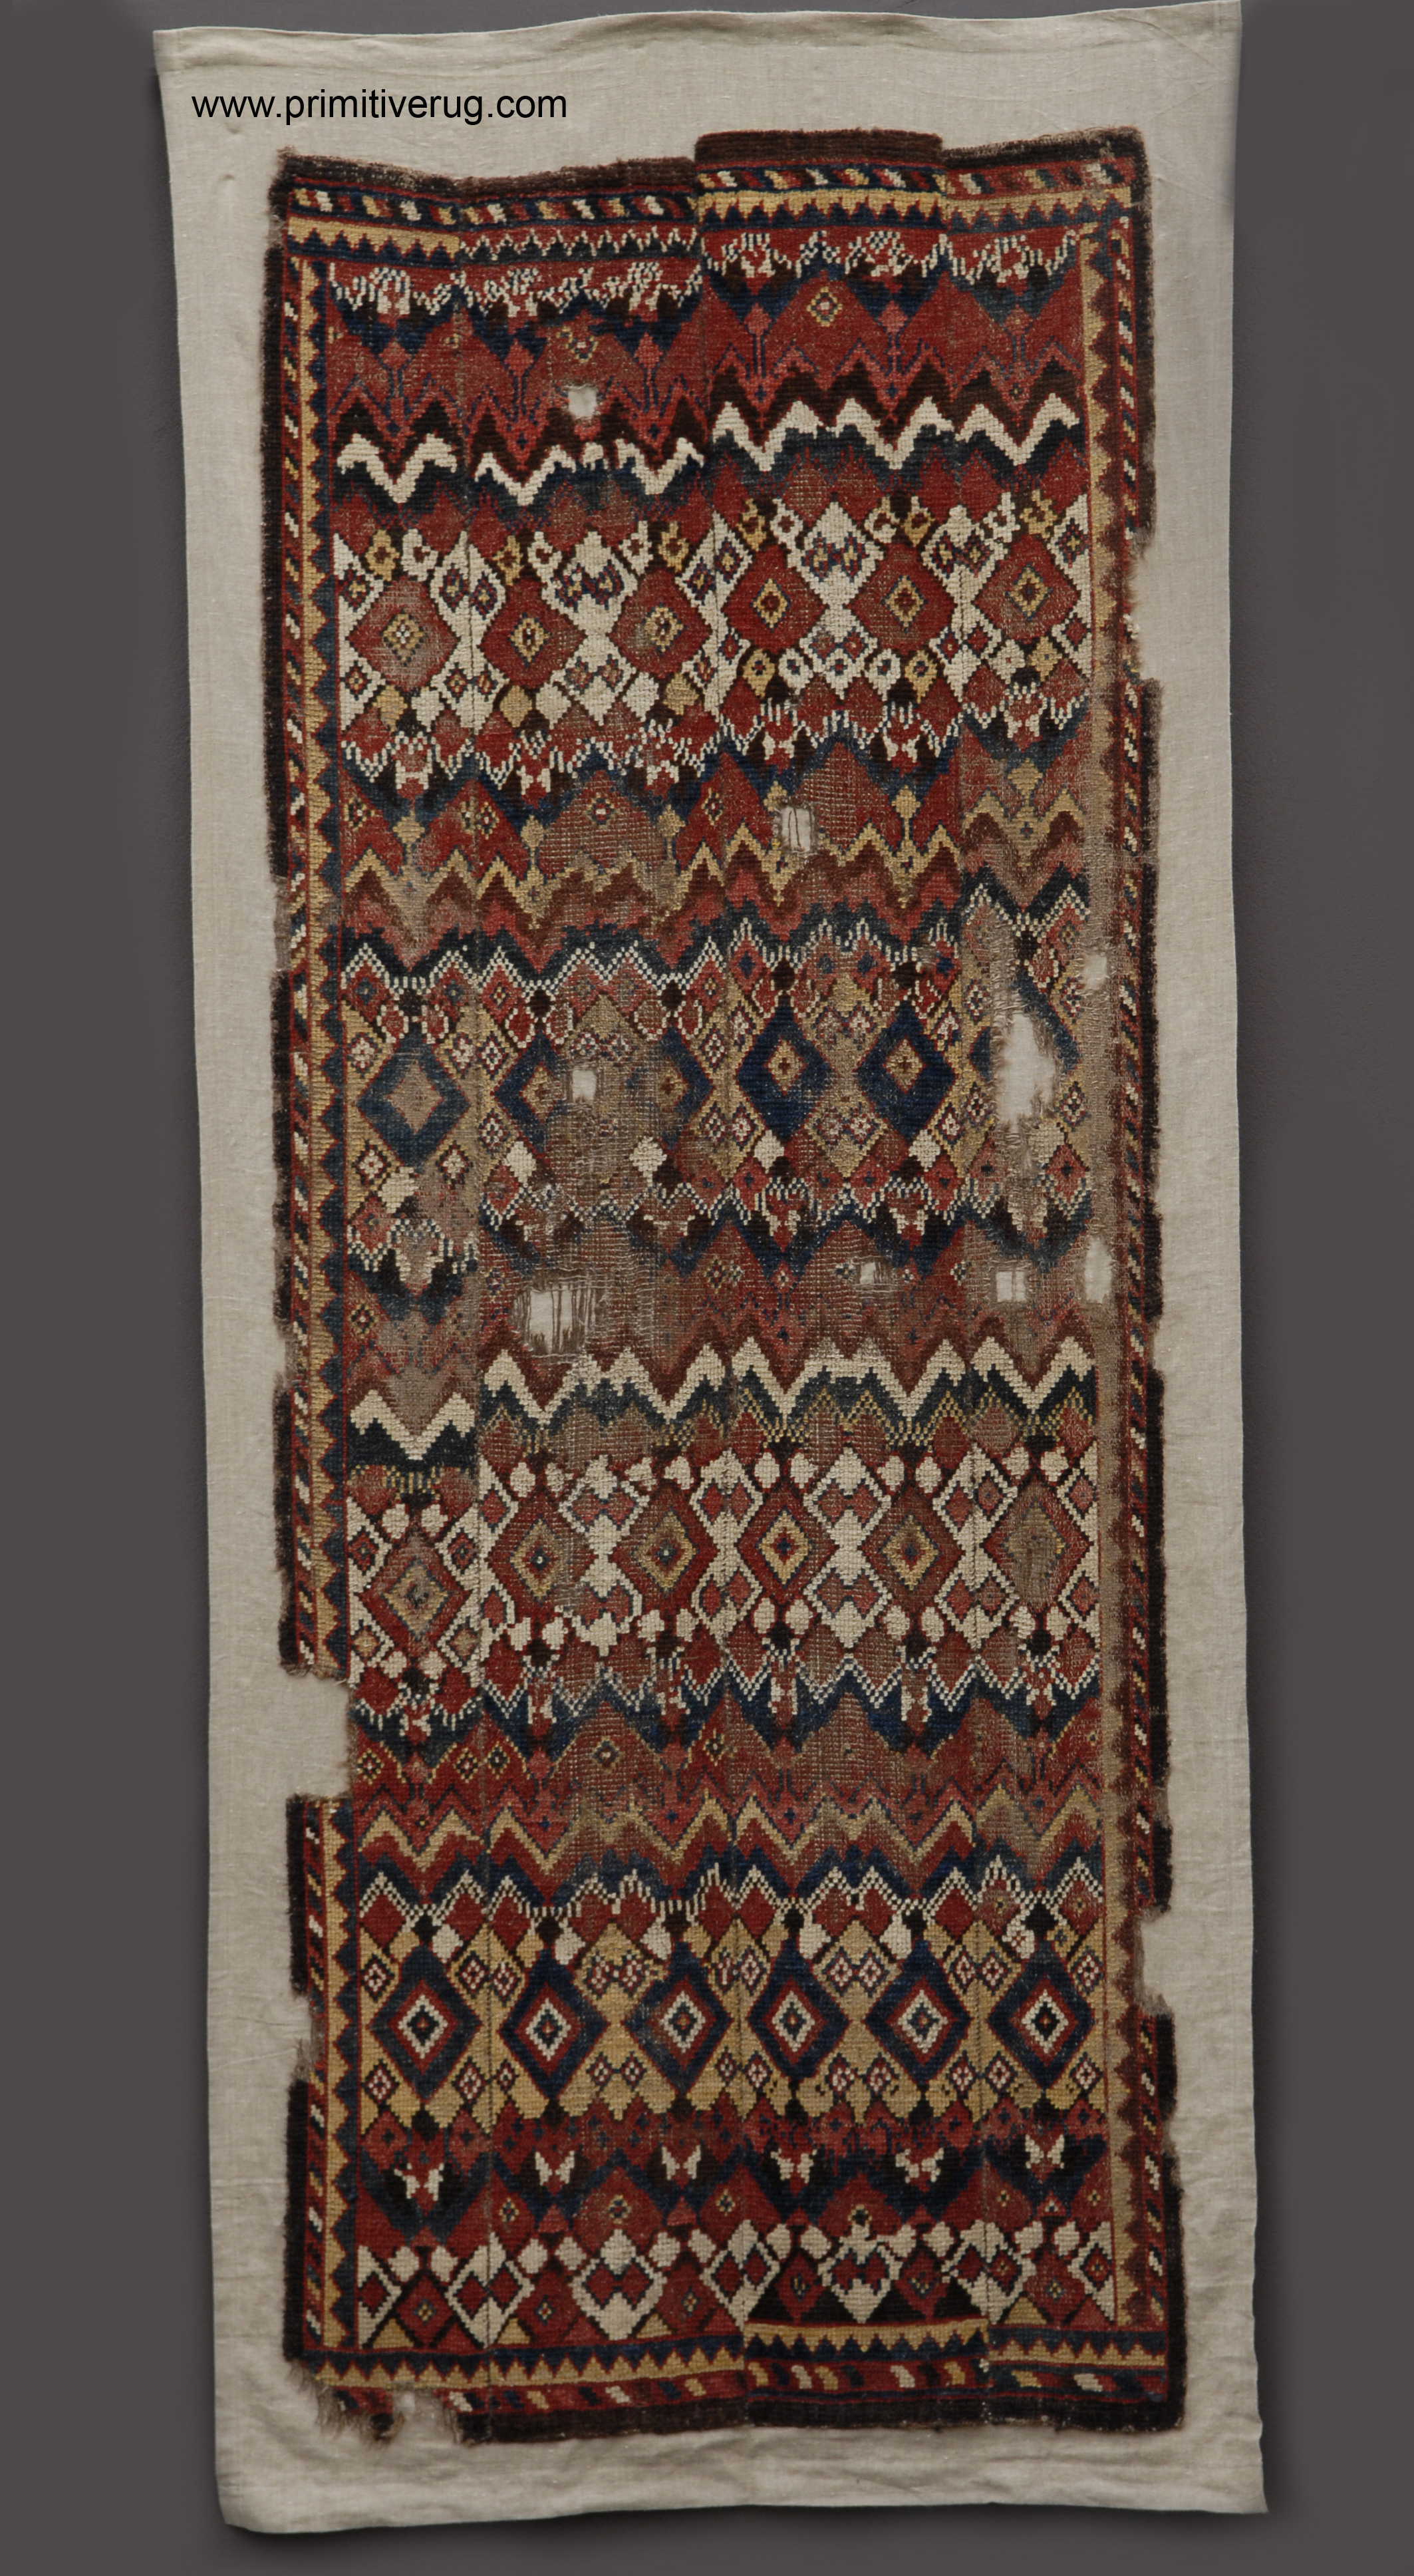 Rug Merchant Tucson Bearskin Rugs Of Central Asia